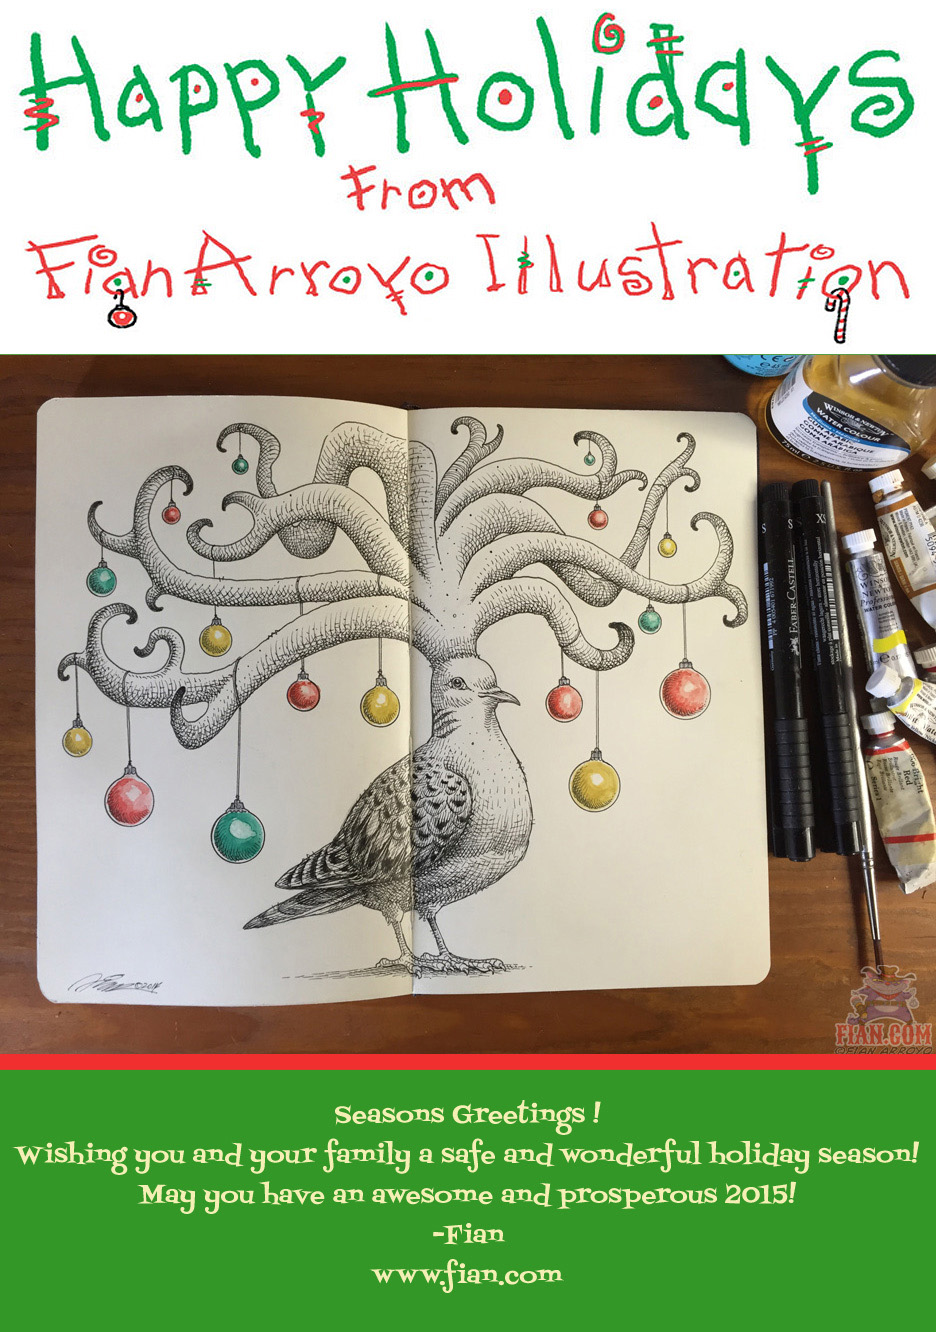 Doodling In The Holiday Season Illustration By Fian Arroyo